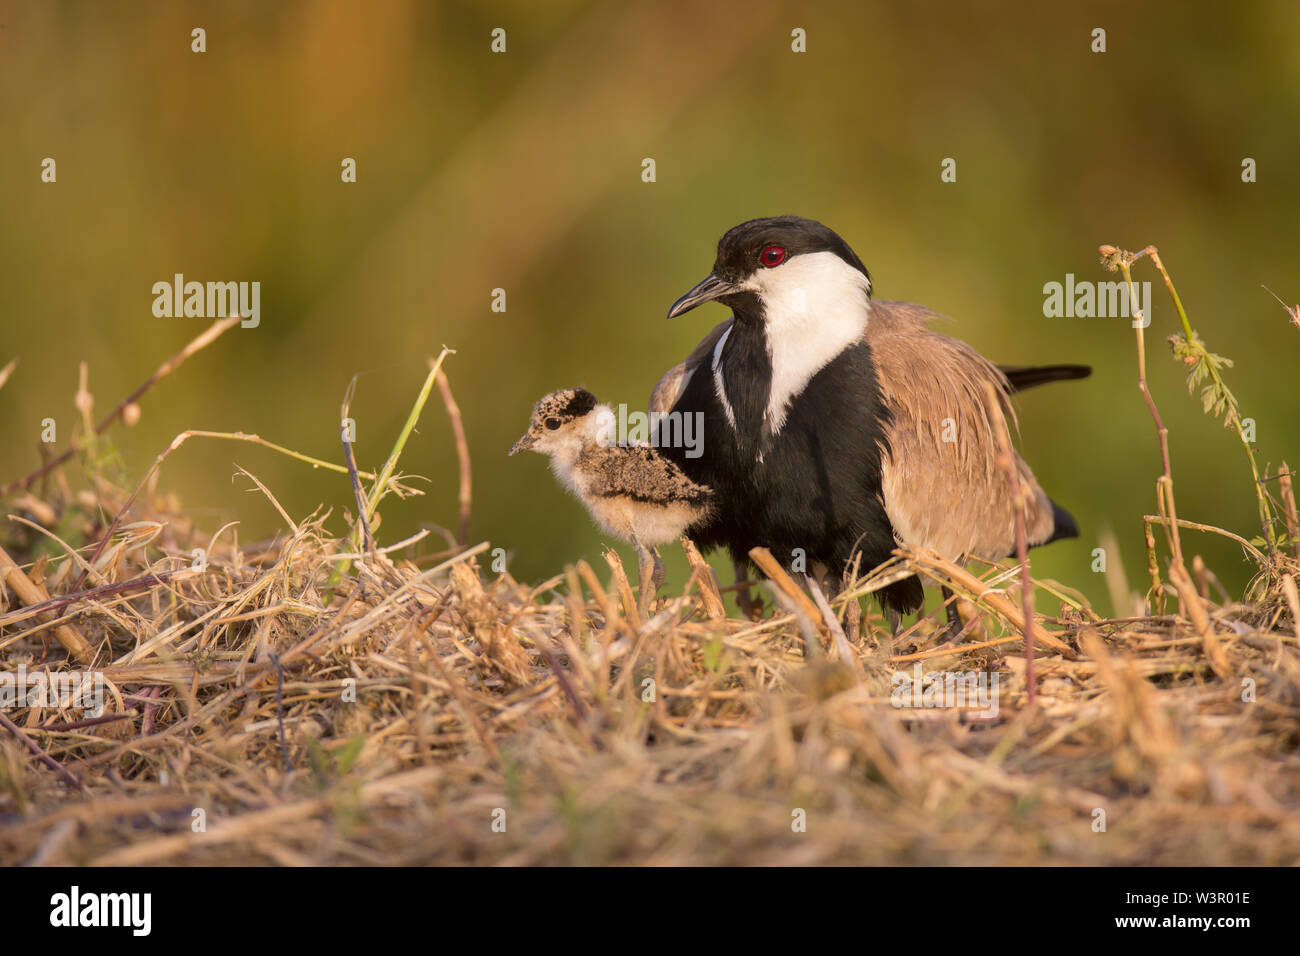 Adult and chick Spur-winged Lapwing or Spur-winged Plover (Vanellus spinosus) Photographed in Israel in Spring April - Stock Image